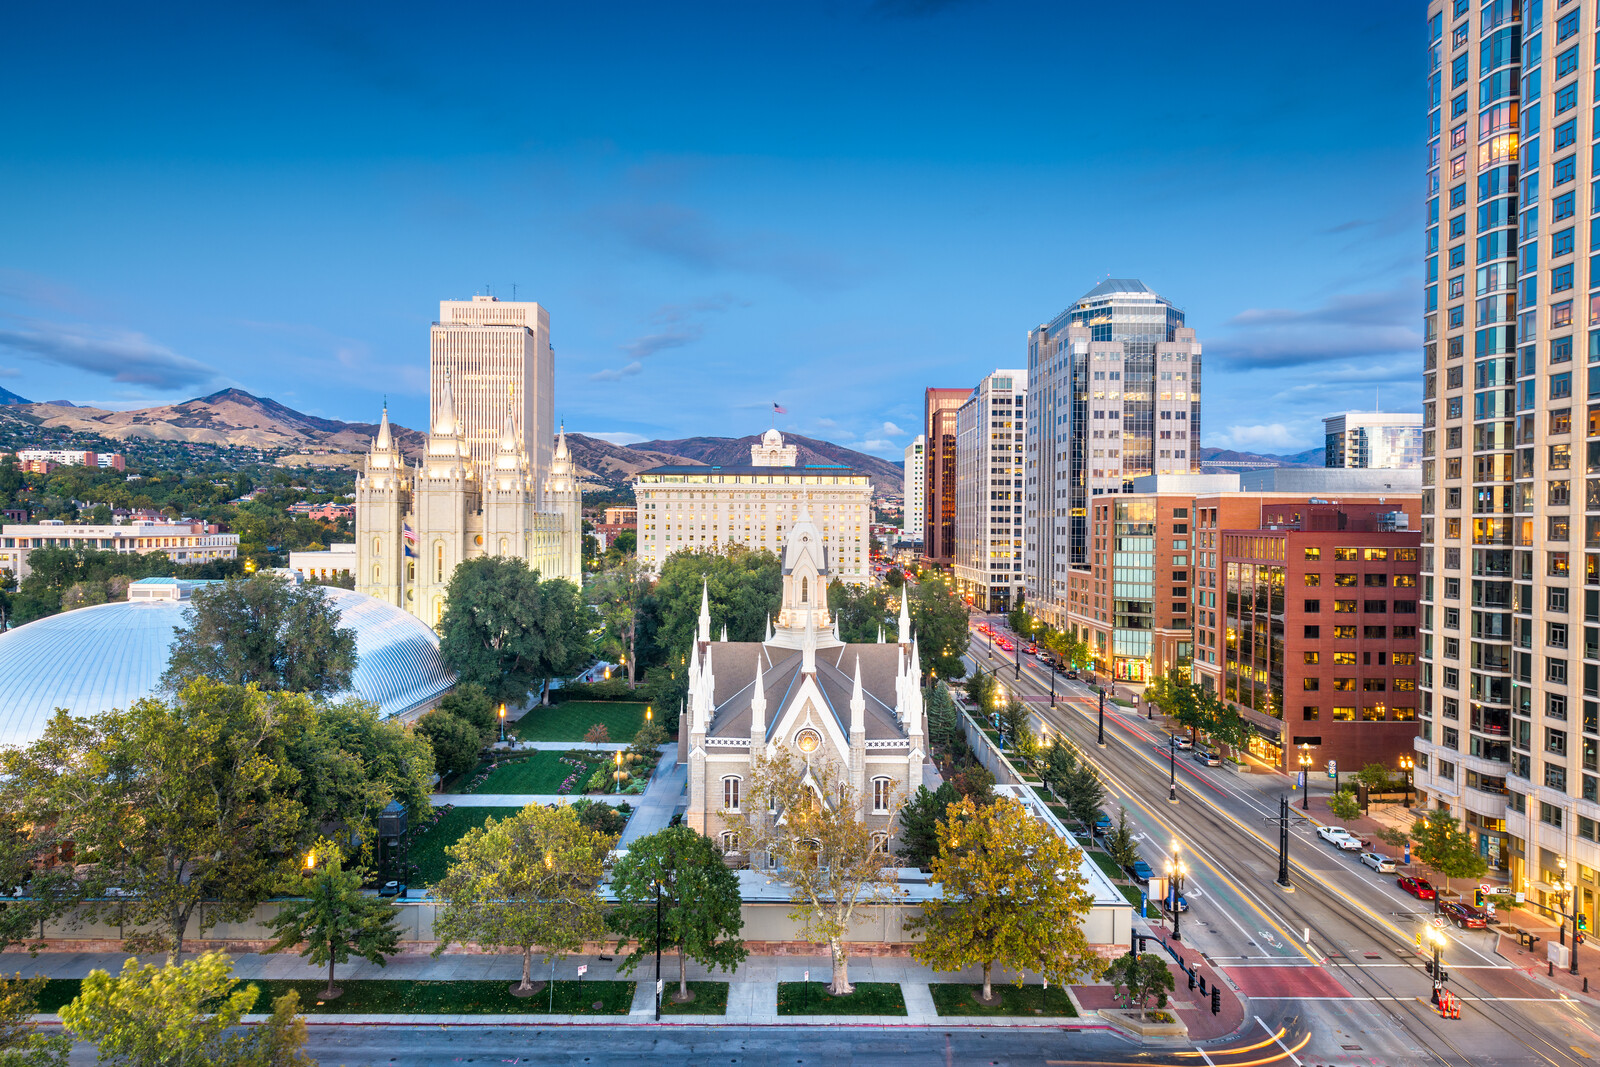 Salt lake city, utah, downtown cityscape over temple square at dusk with blue skies and precisely manicured greens and trees